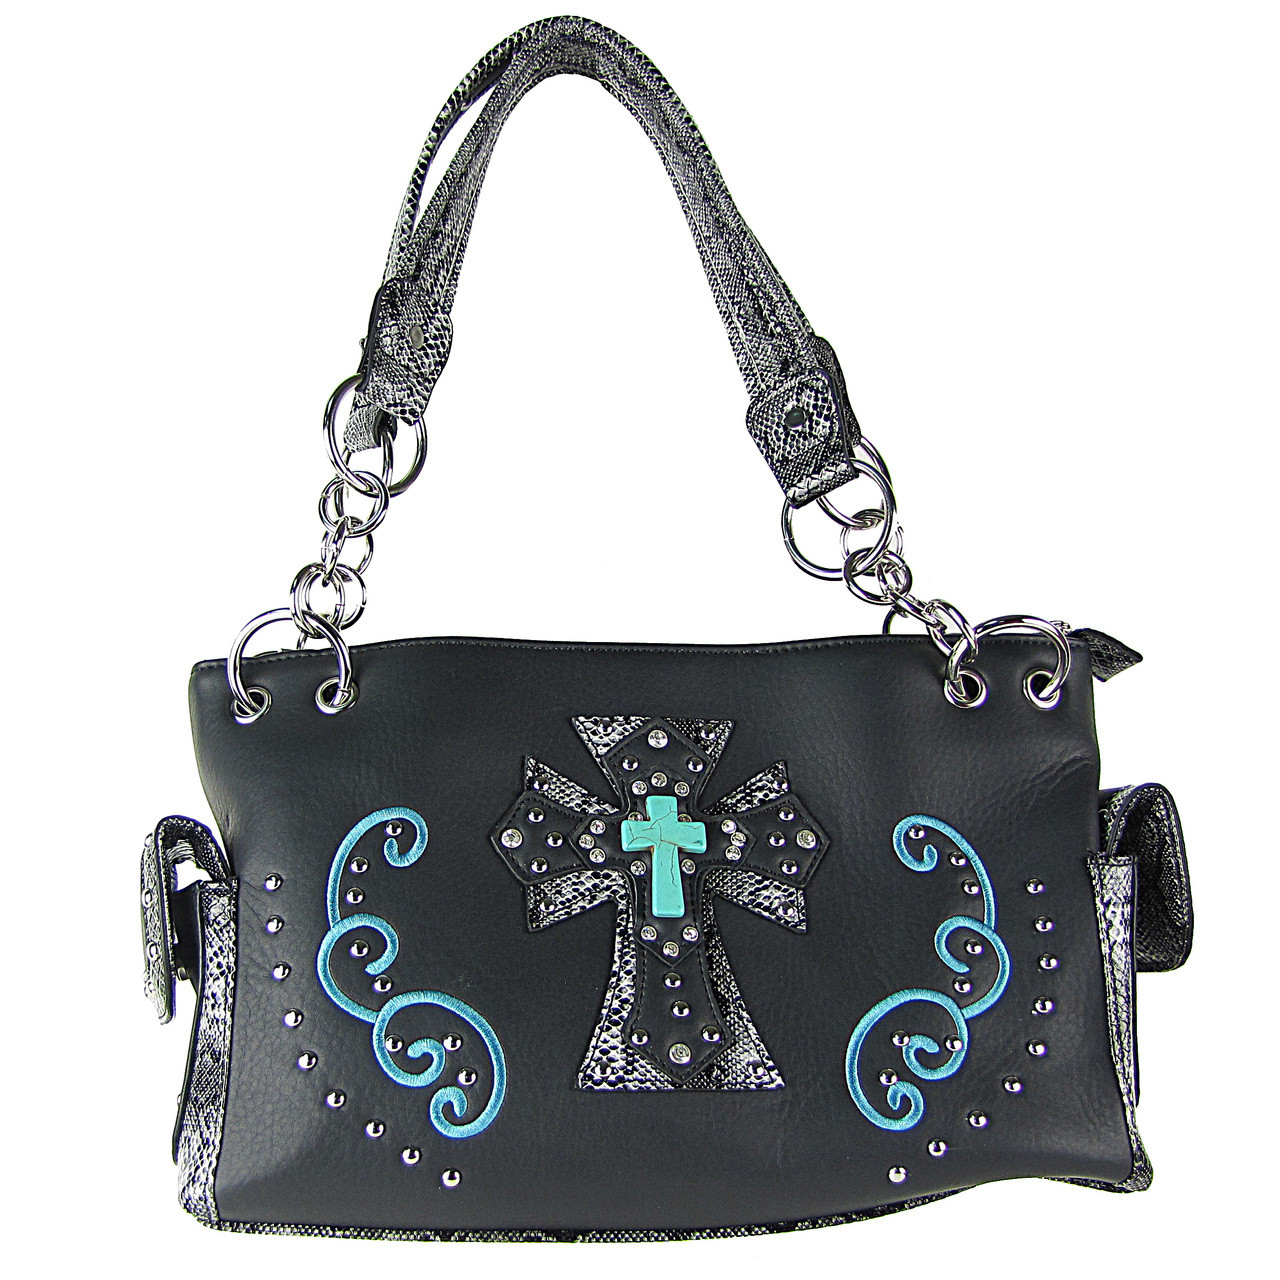 BLACK REPTILE STUDDED RHINESTONE BLUE STONE CROSS LOOK SHOULDER HANDBAG HB1-W3CCRBLK